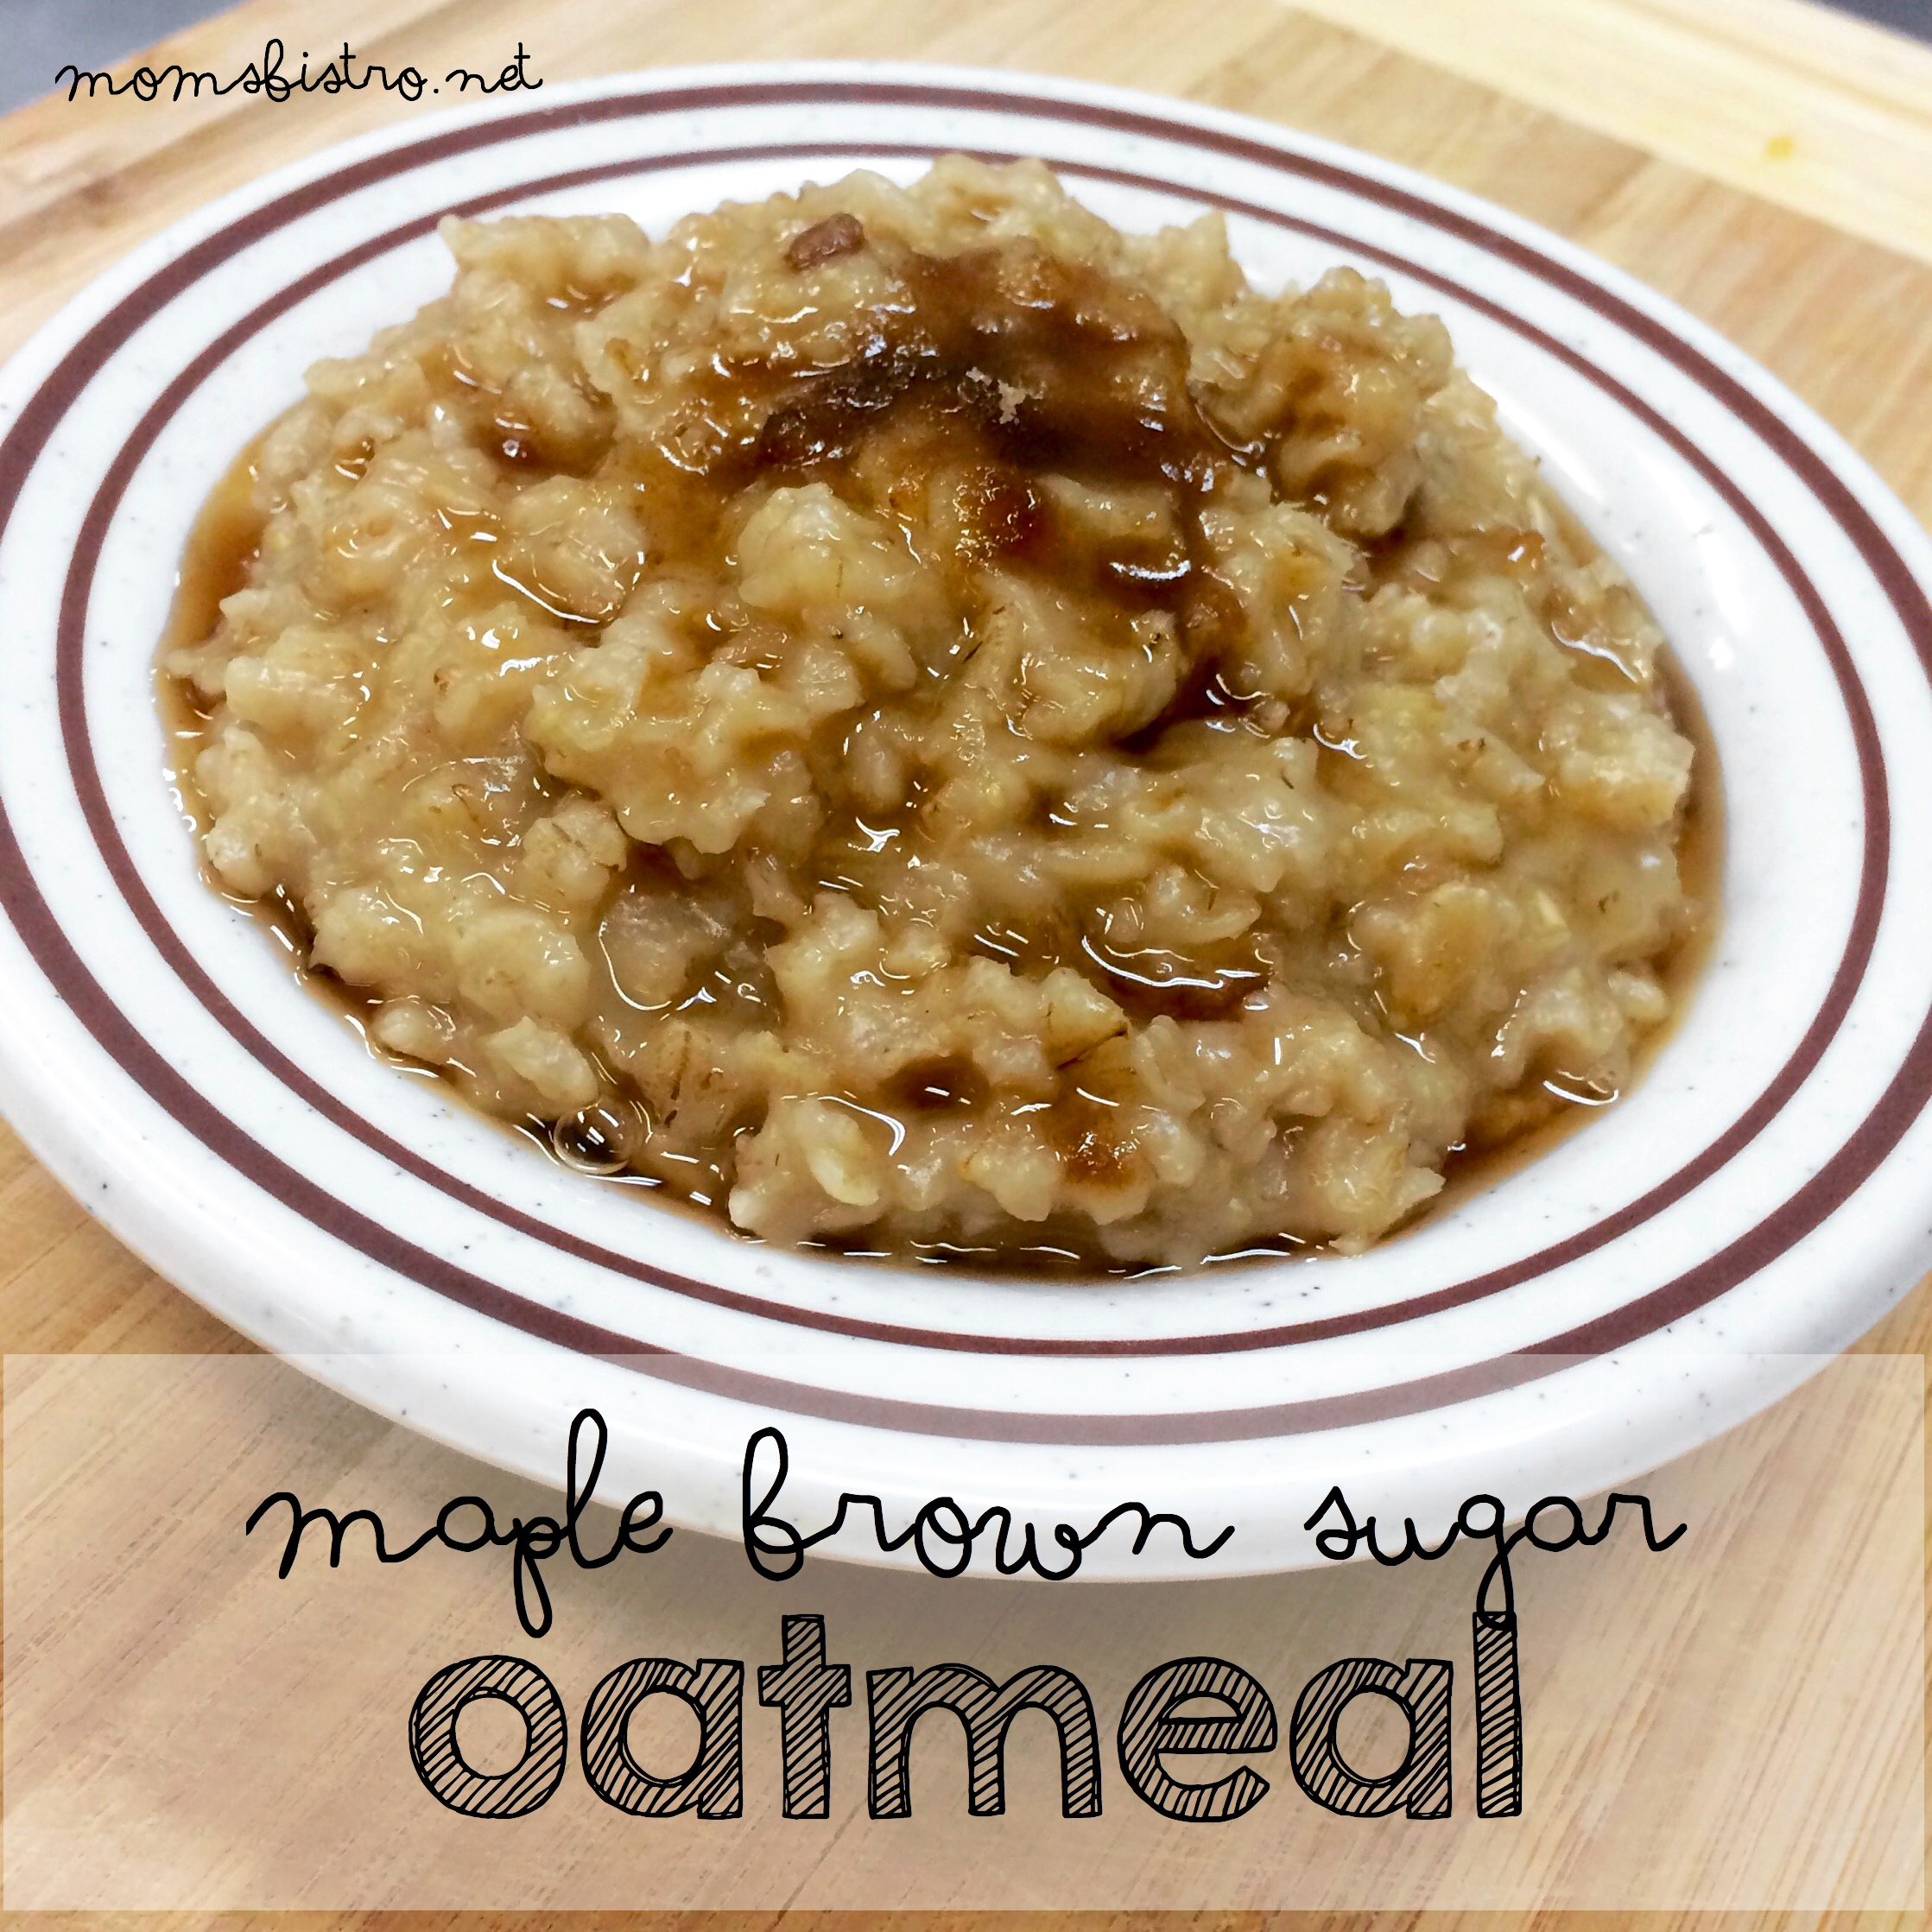 Start Your Mornings Right With This Quick and Easy 10-Minute Homemade Maple Brown Sugar Oatmeal Recipe